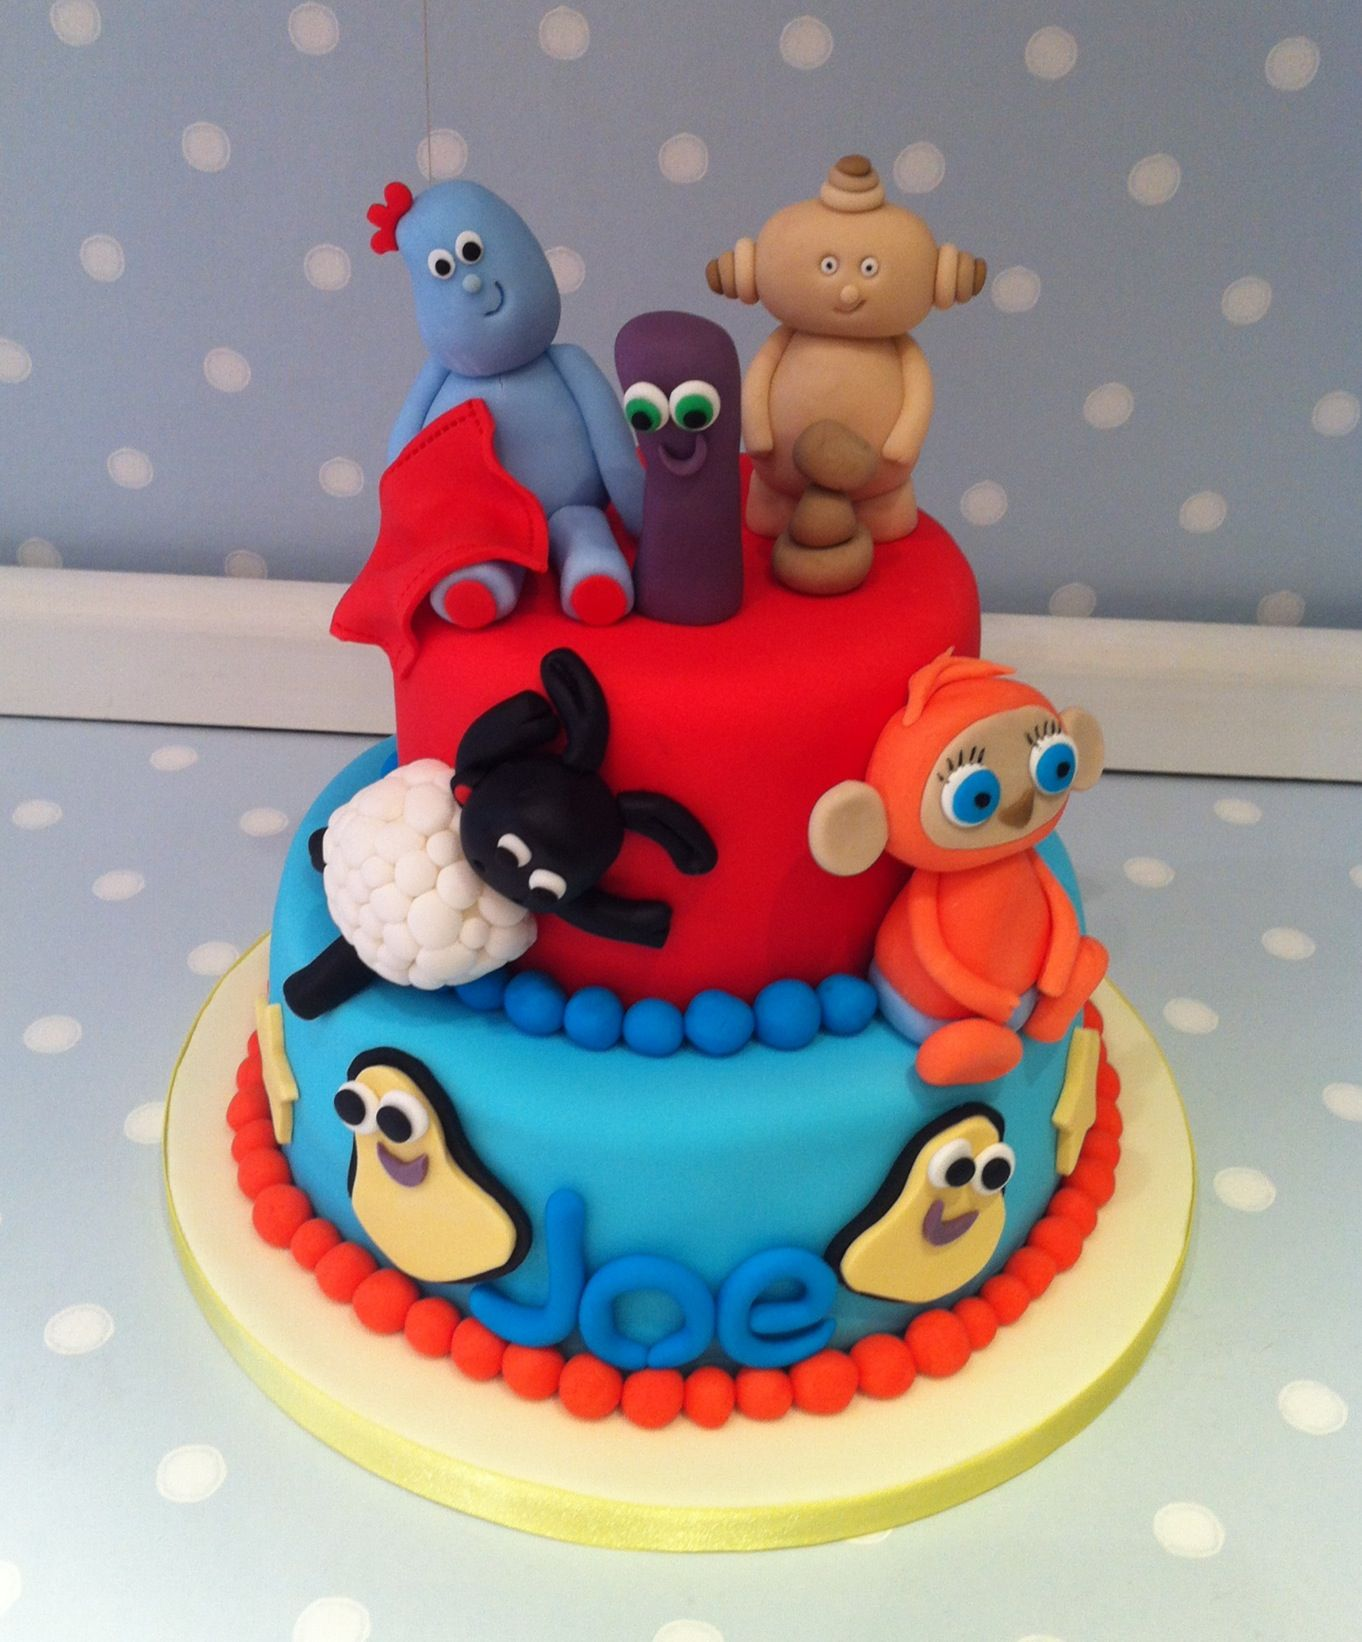 Pin Cbeebies Cake Little Cherry Cake On Pinterest